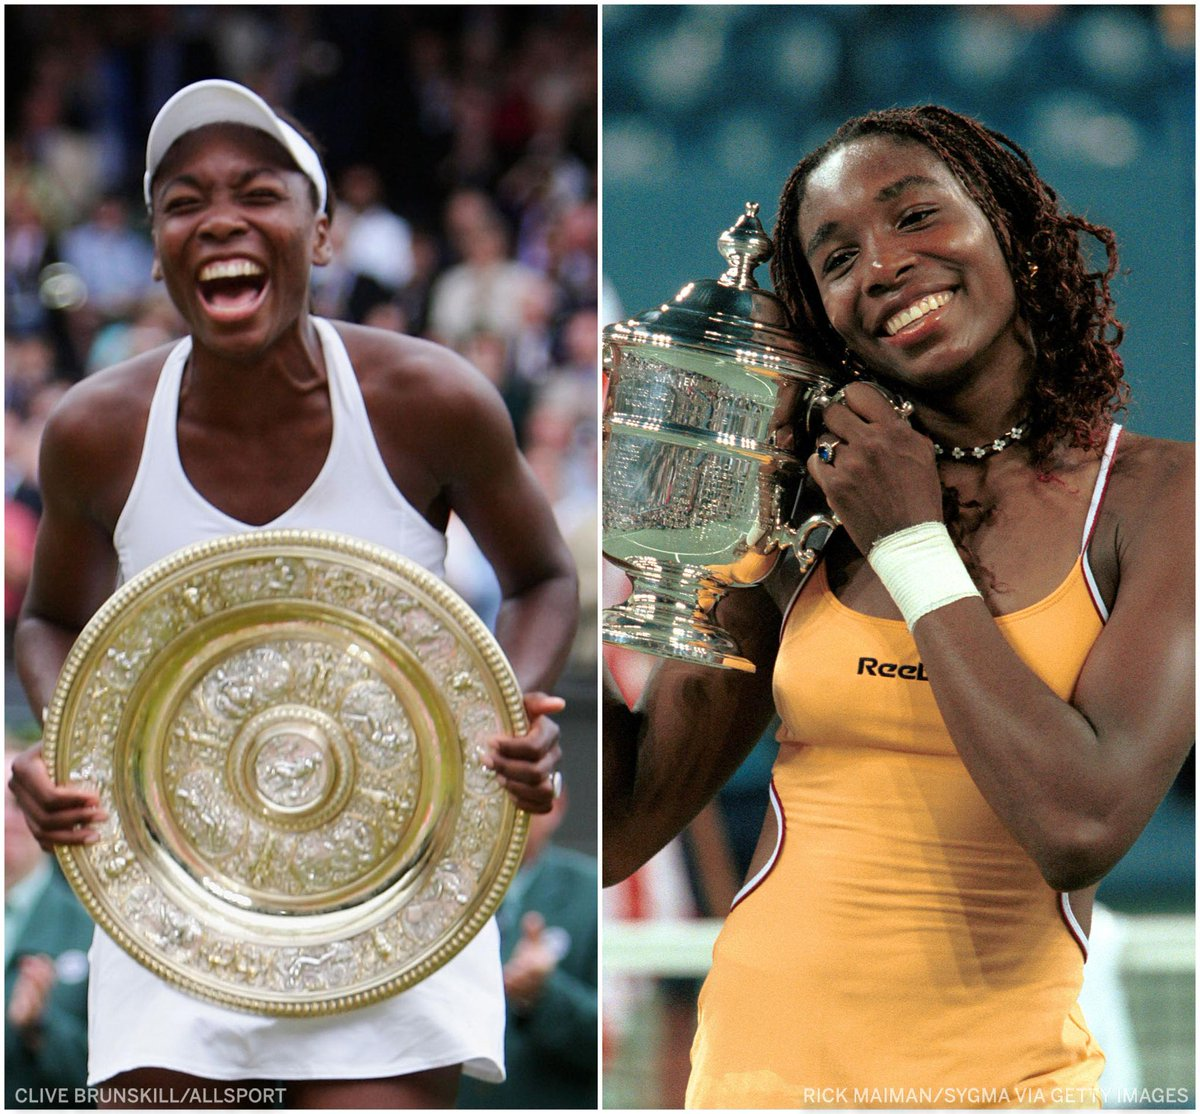 7 Grand Slam titles 4-time Olympic gold medalist 49 WTA singles titles  Happy birthday @Venuseswilliams, a legend in the tennis world 🎾